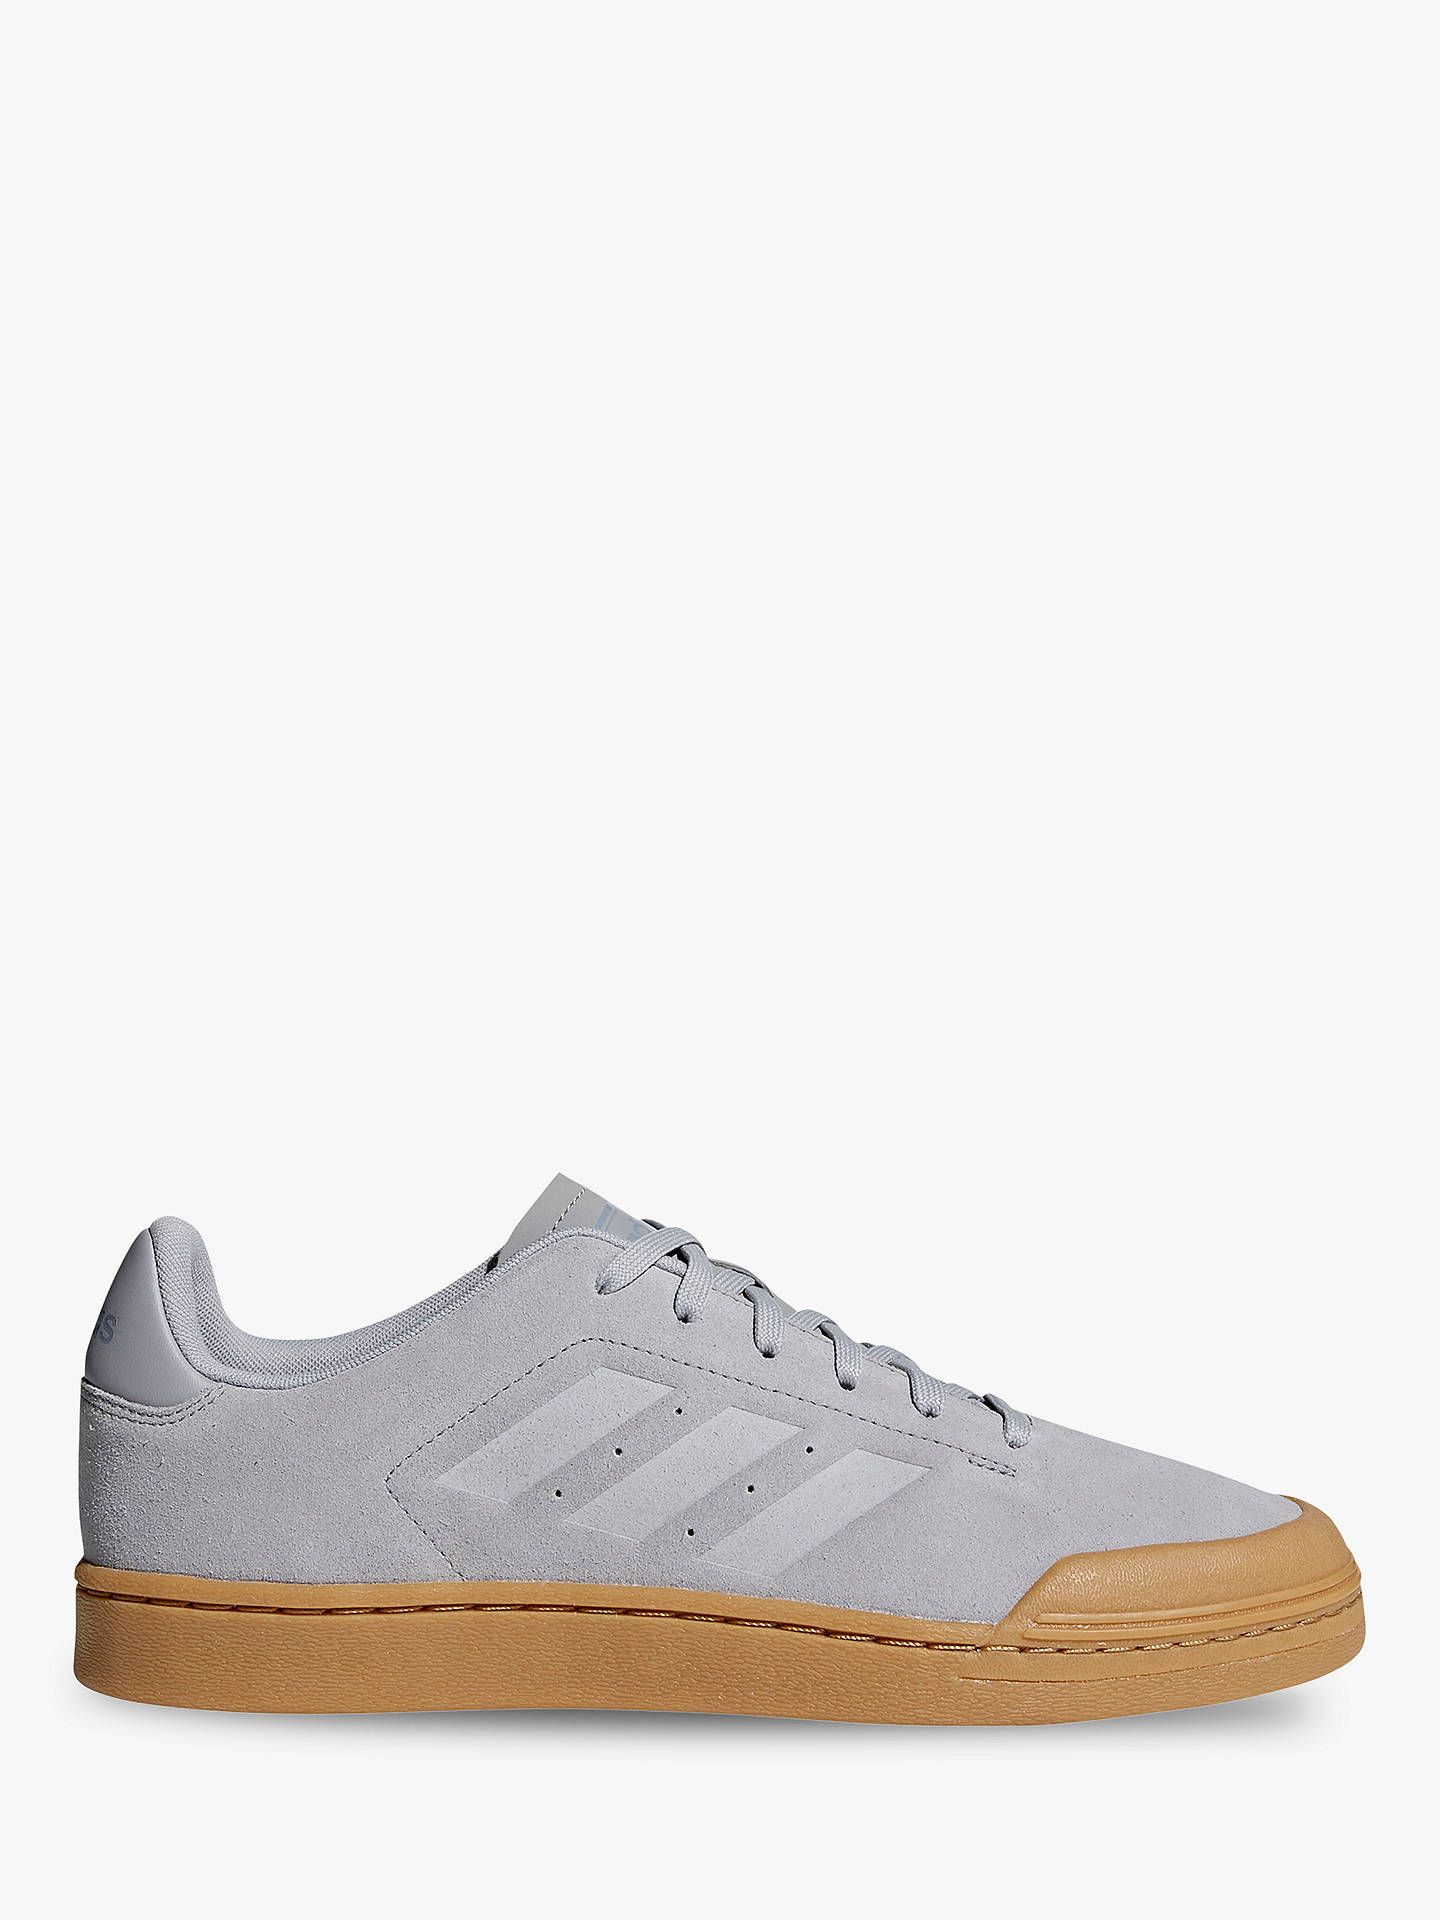 8e6cf098ad6 Buyadidas Court 70s Men s Trainers